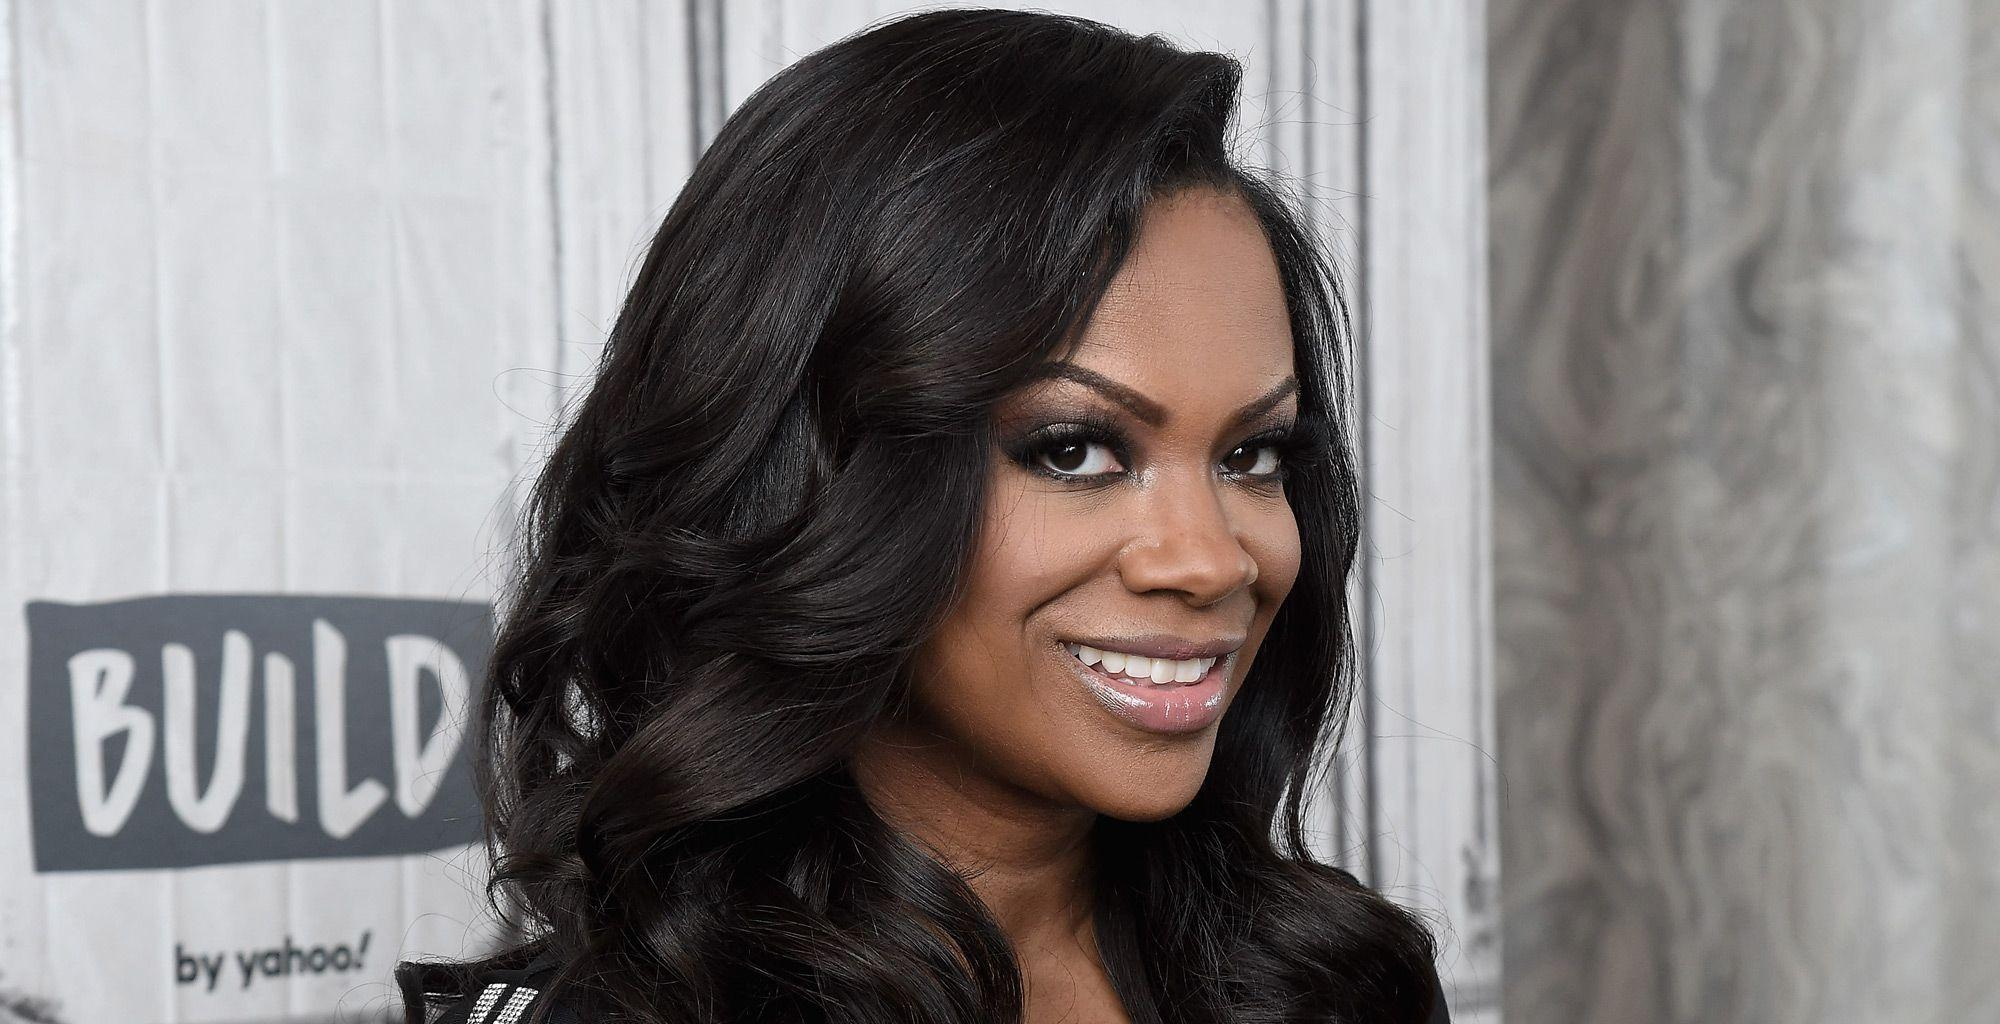 Kandi Burruss Shares A Jaw-Dropping Look That Has Fans Drooling - Check Out The Vintage, Pinup Vibes She's Spreading